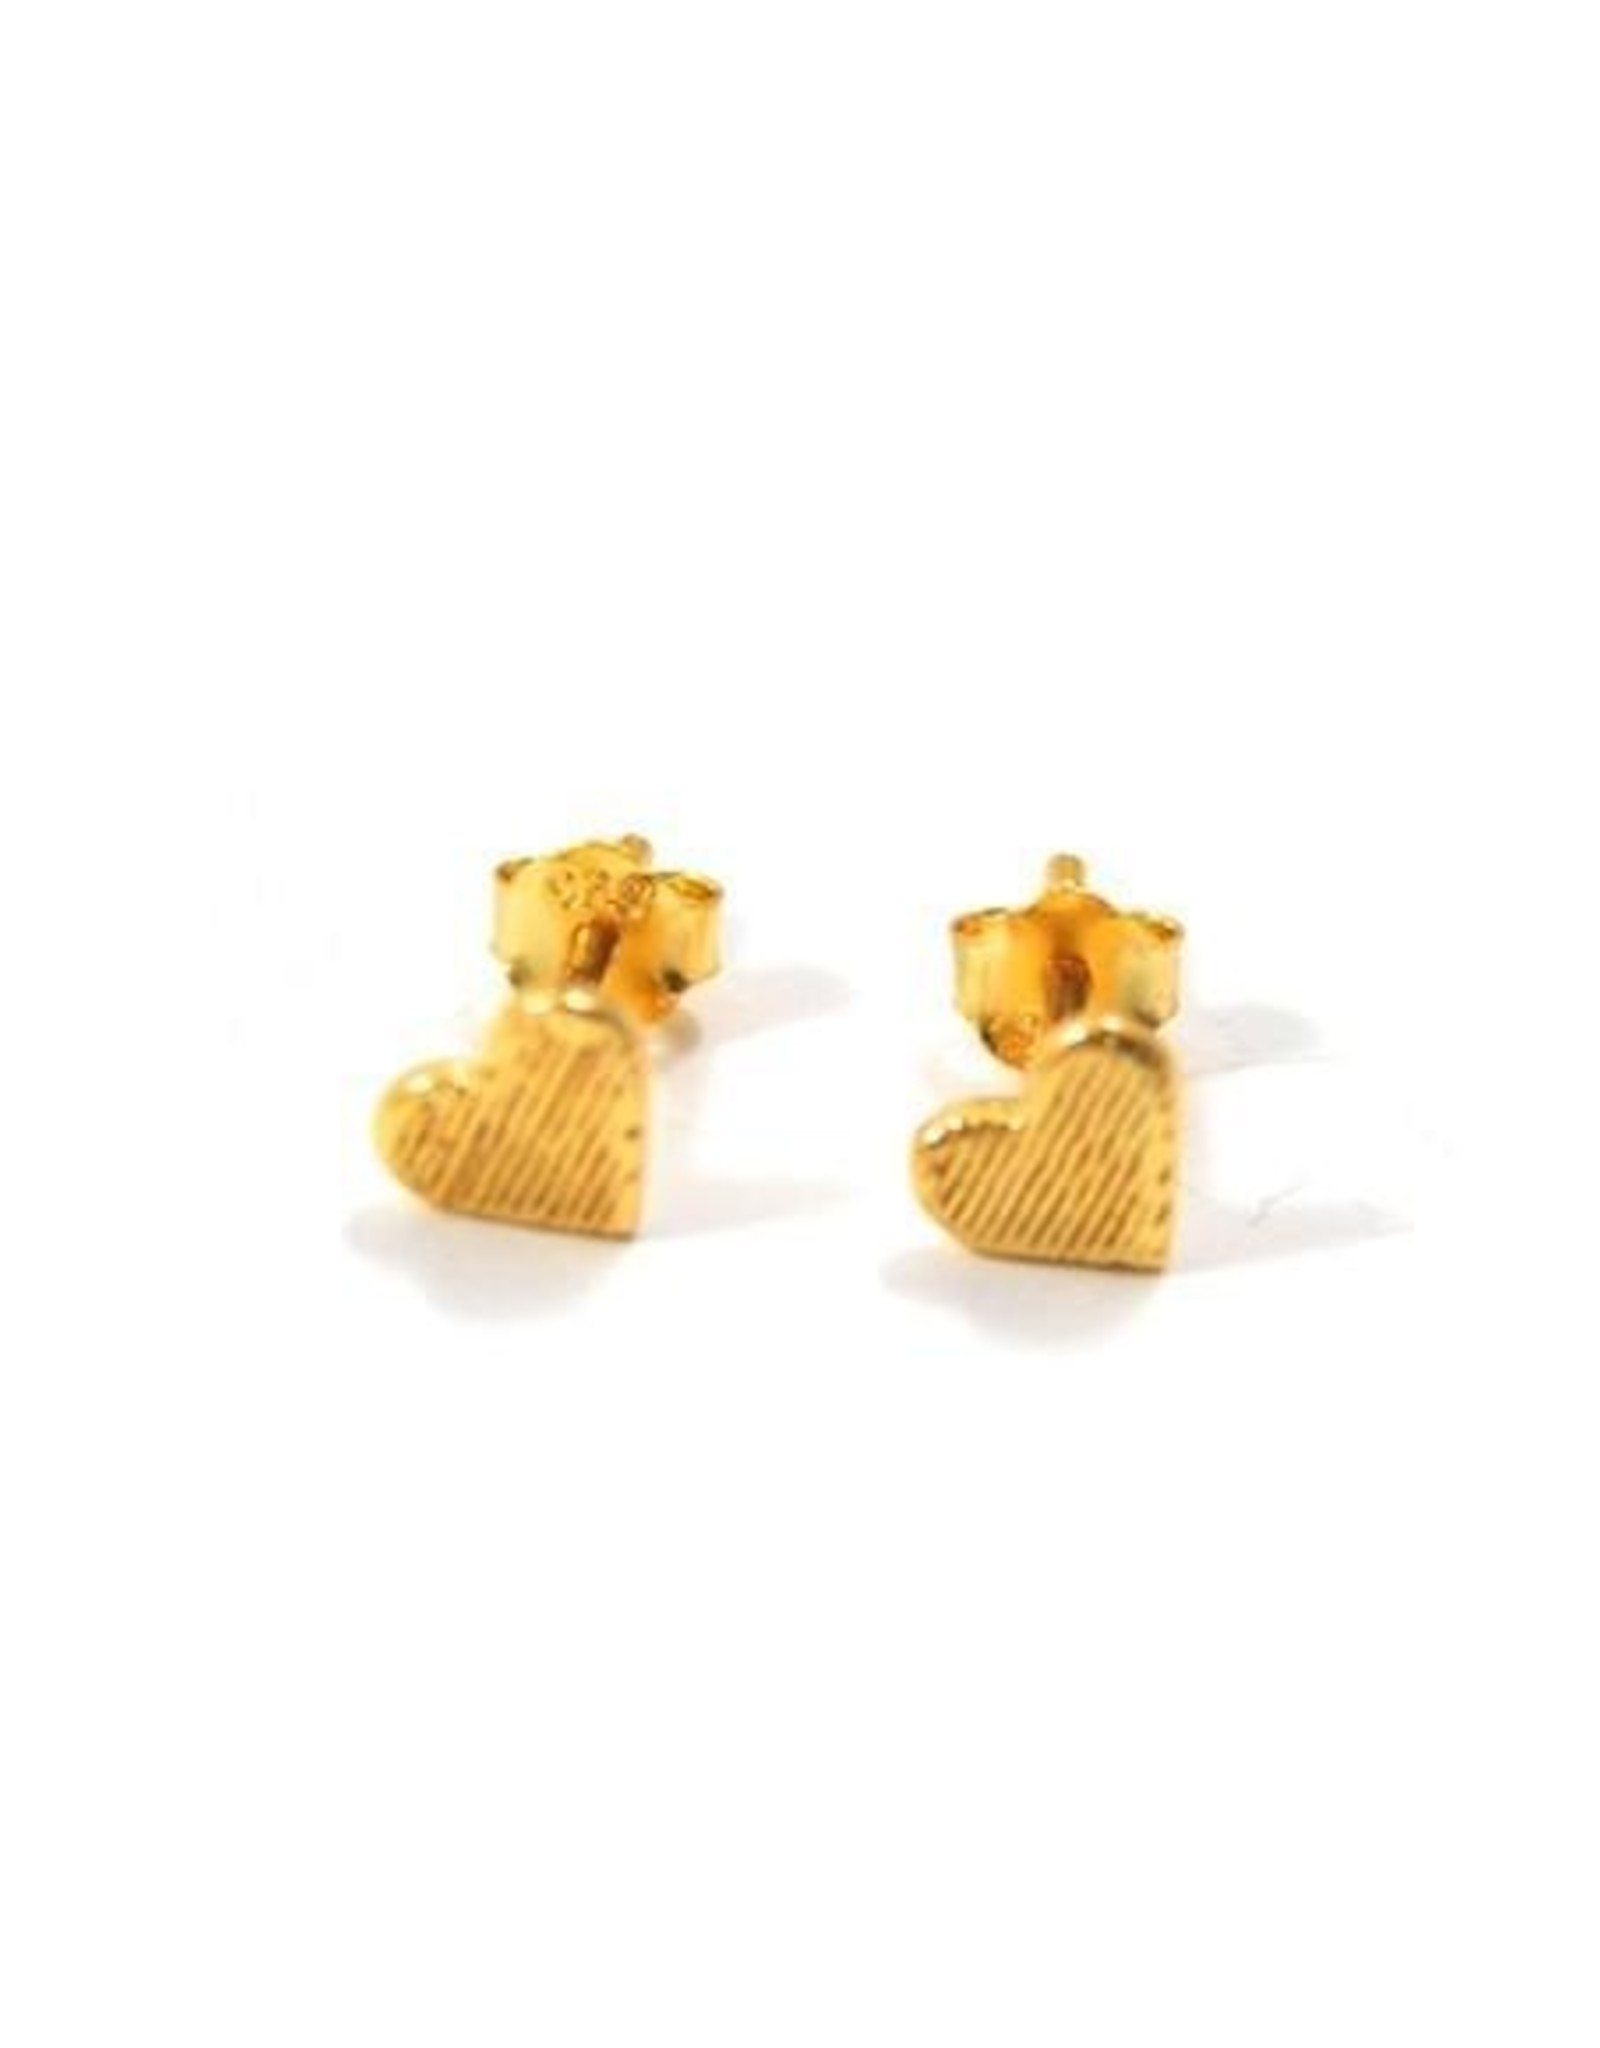 f.y.b. f.y.b. - Earrings Heart Studs Gold